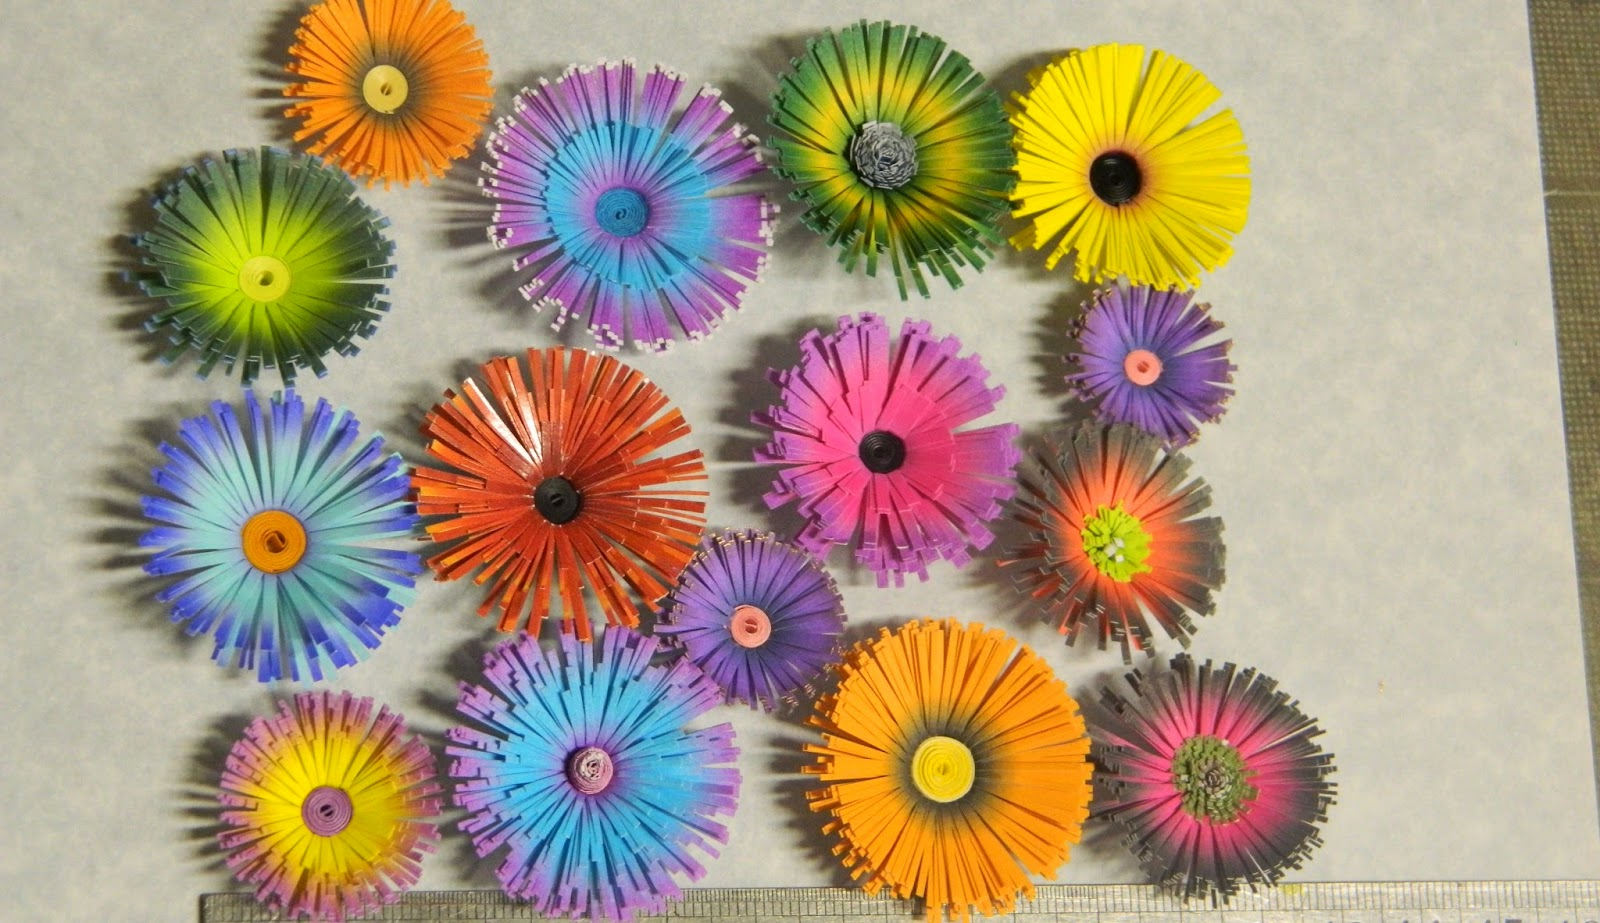 http://www.customquillingbydenise.com/shop/quilling-paper-strips-imported-papers-c-21_85.html